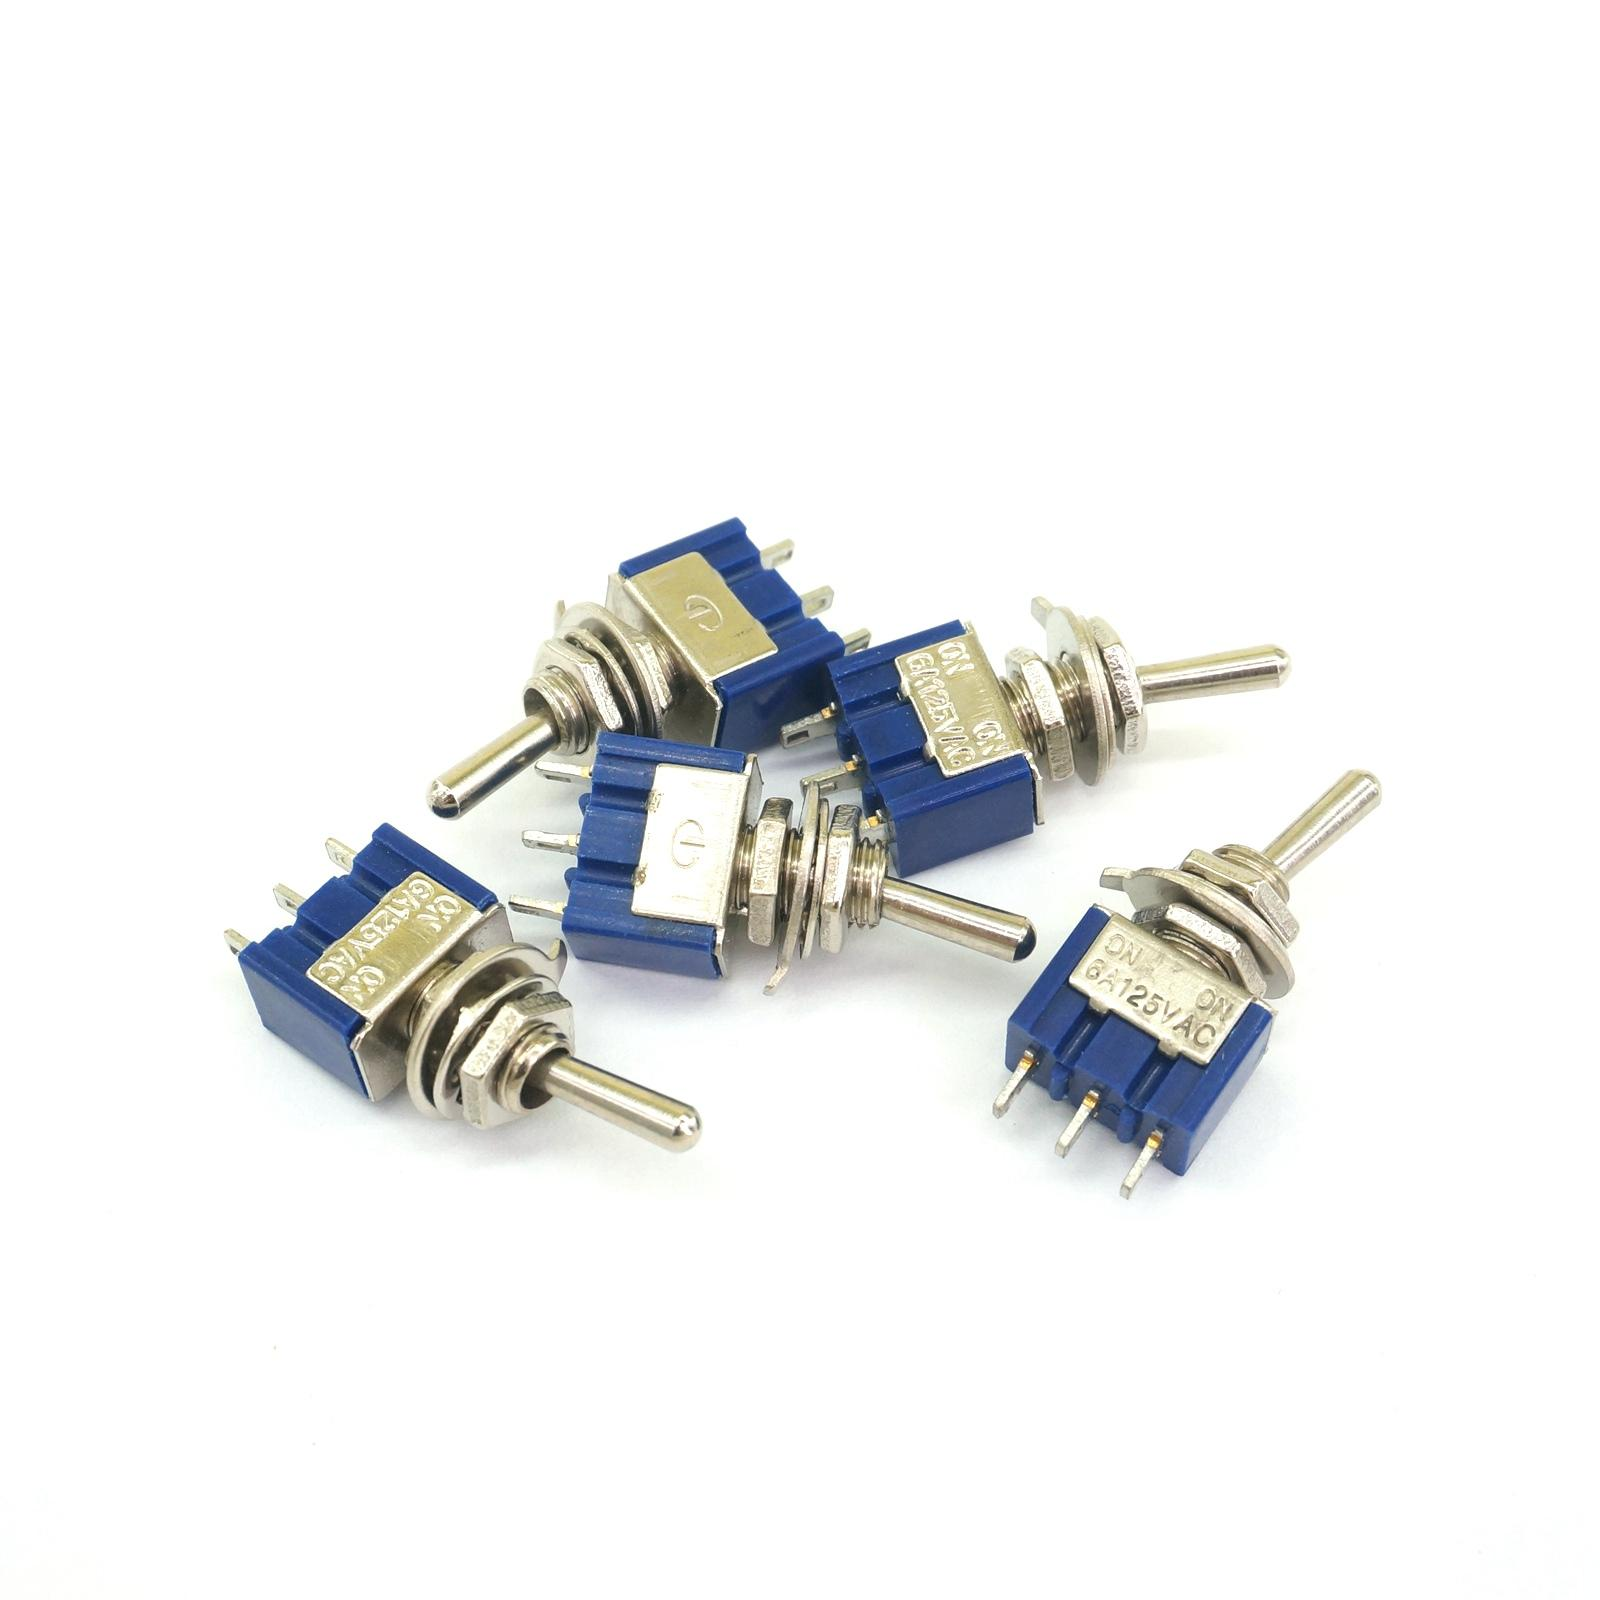 small resolution of 5pcs mts 102 3 pin single pole double throw on on 6a 125vac mini toggle switch